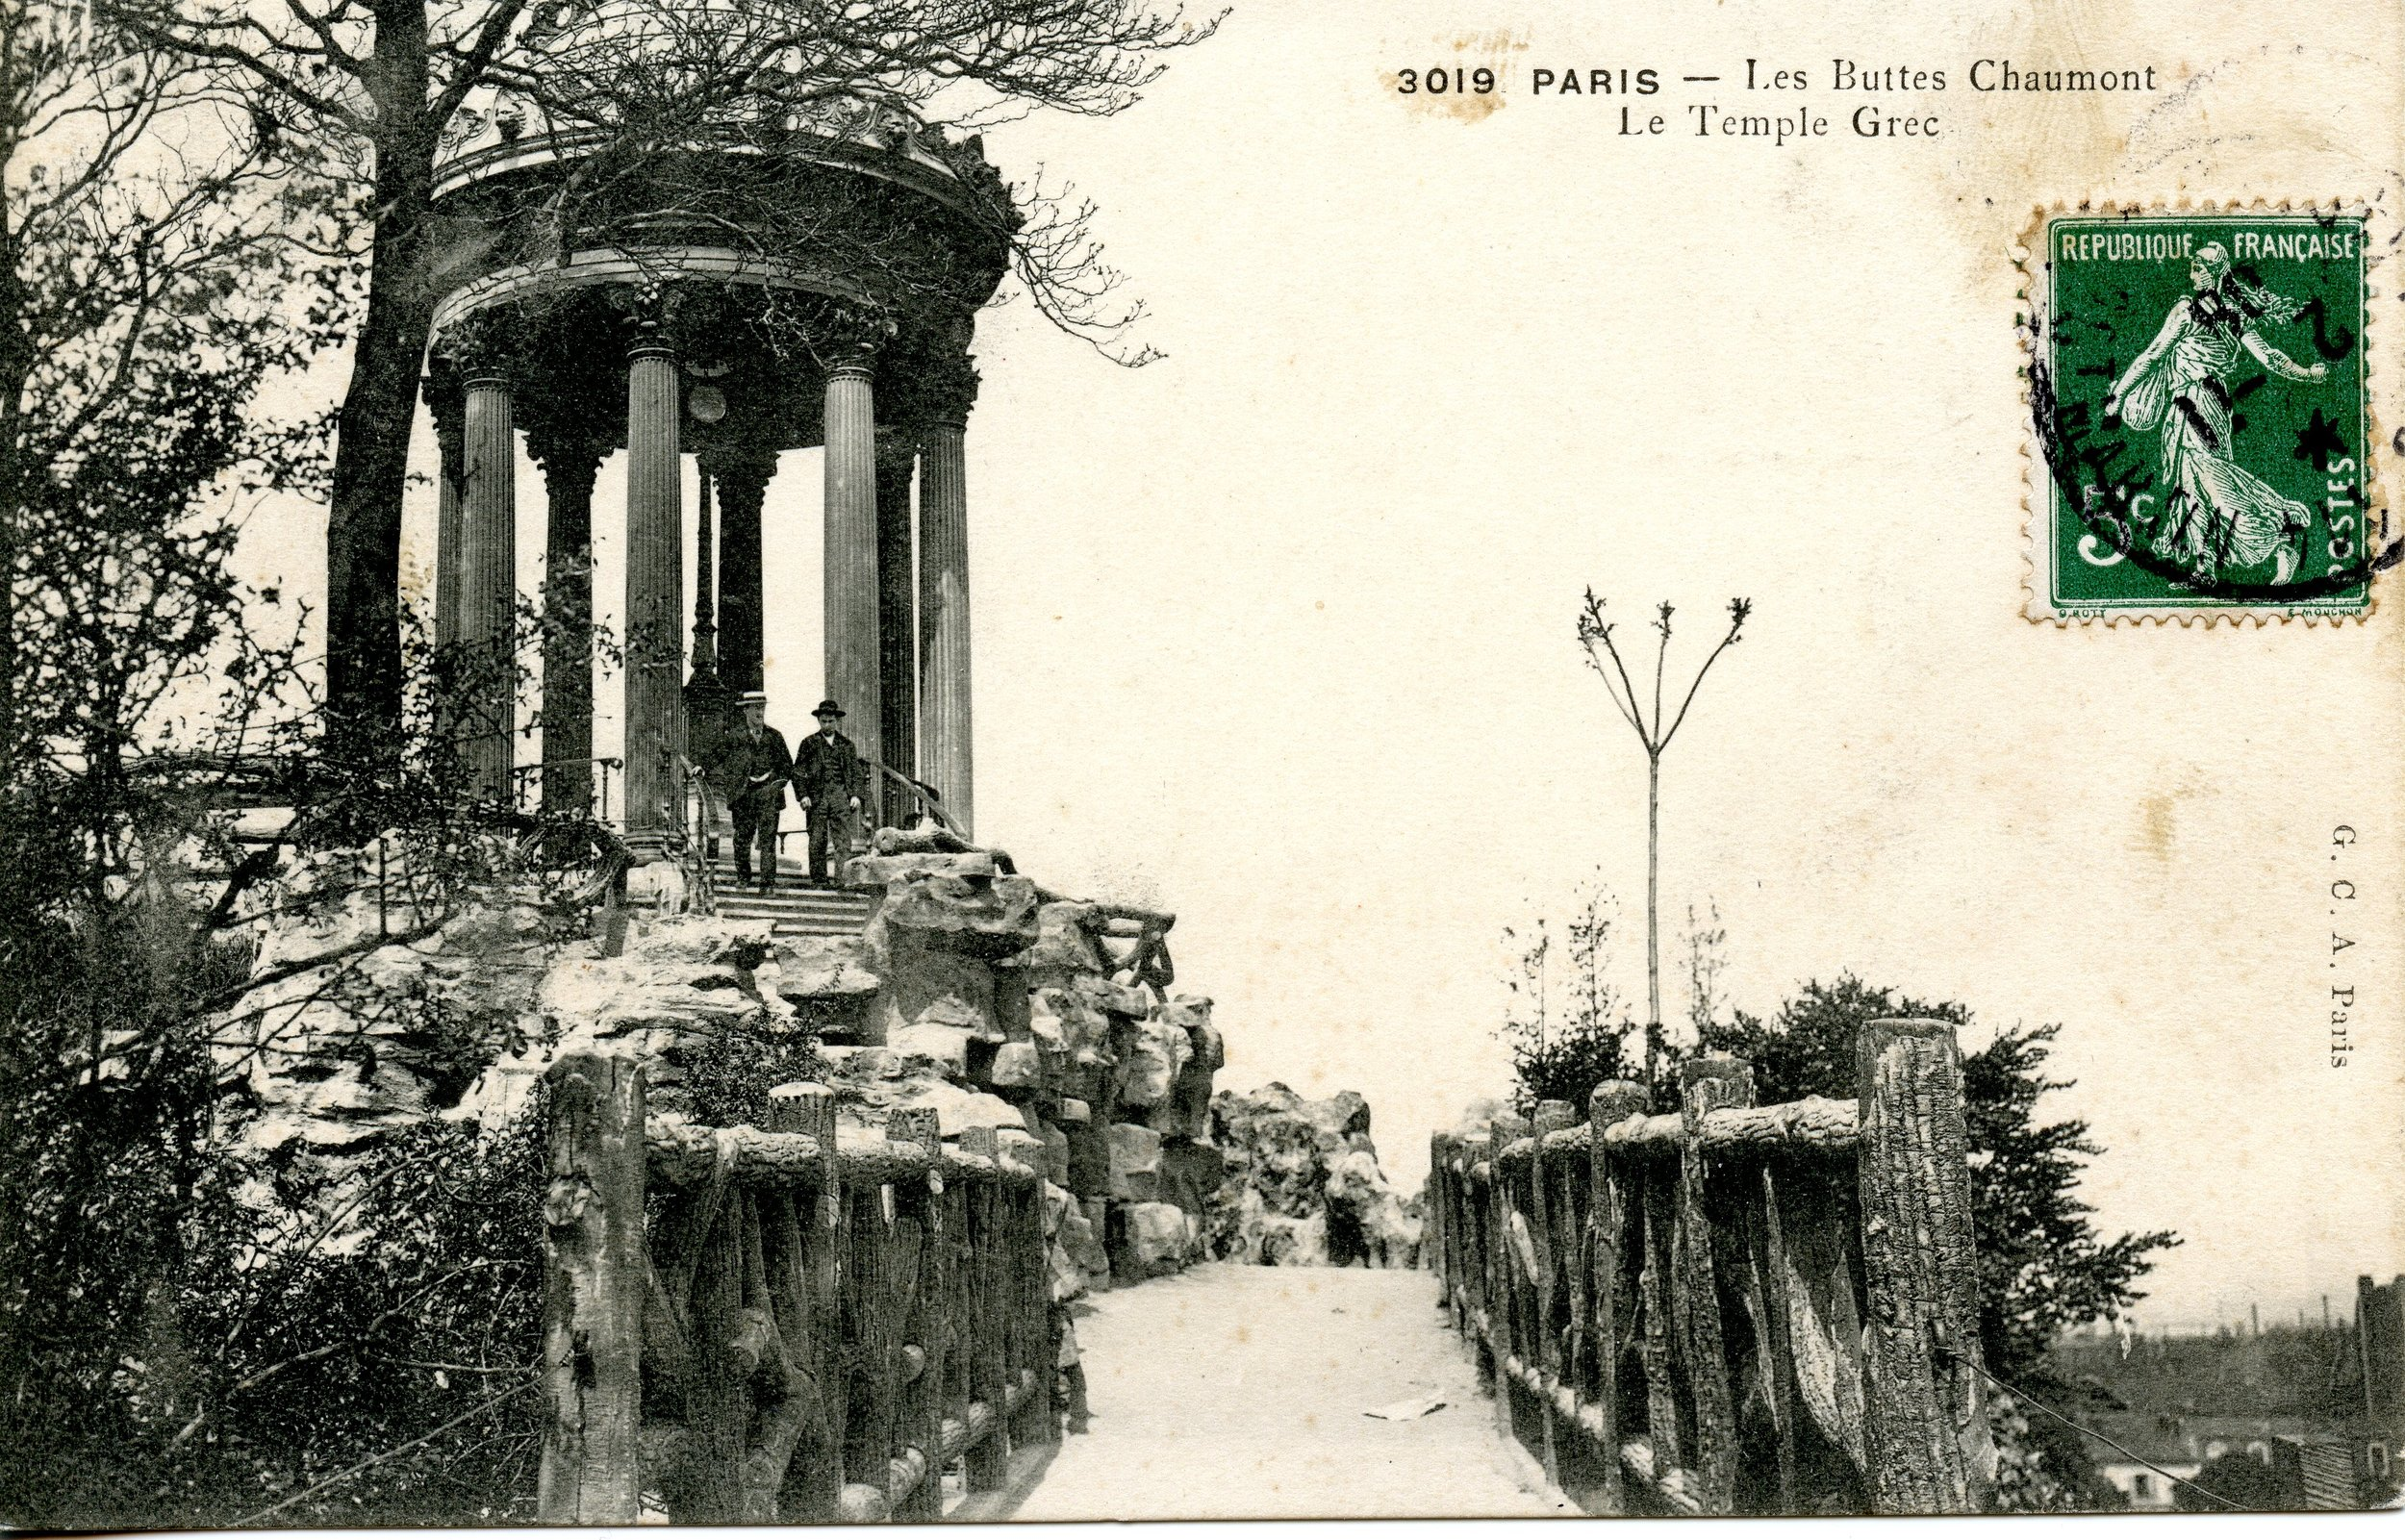 A historic postcard of the Temple of Sybille, the folly in Buttes Chaumont